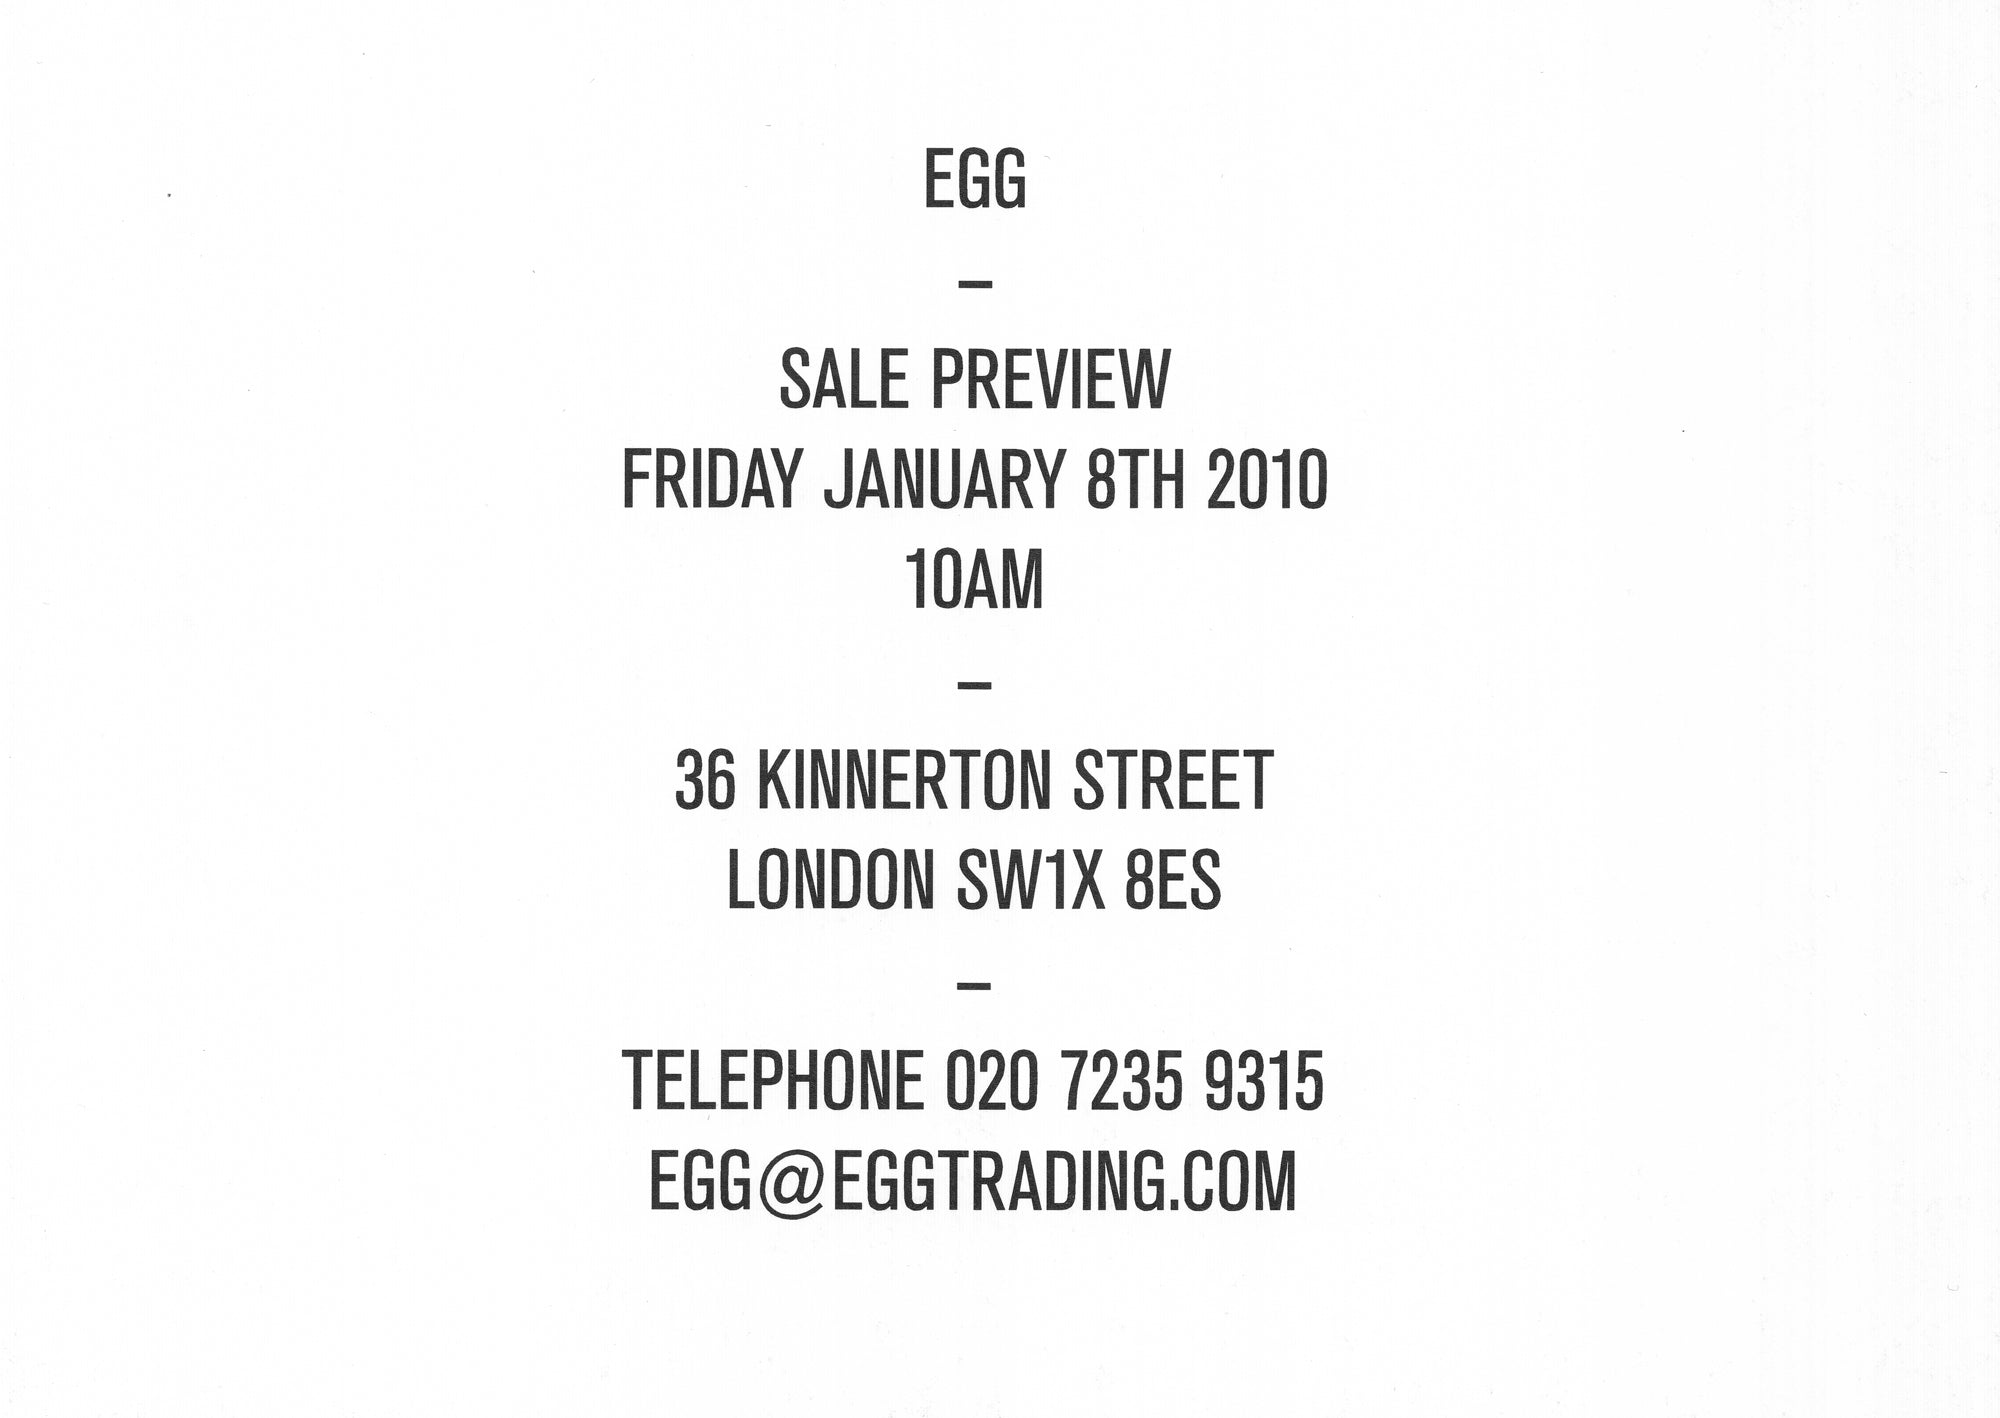 egg winter sale January 2010